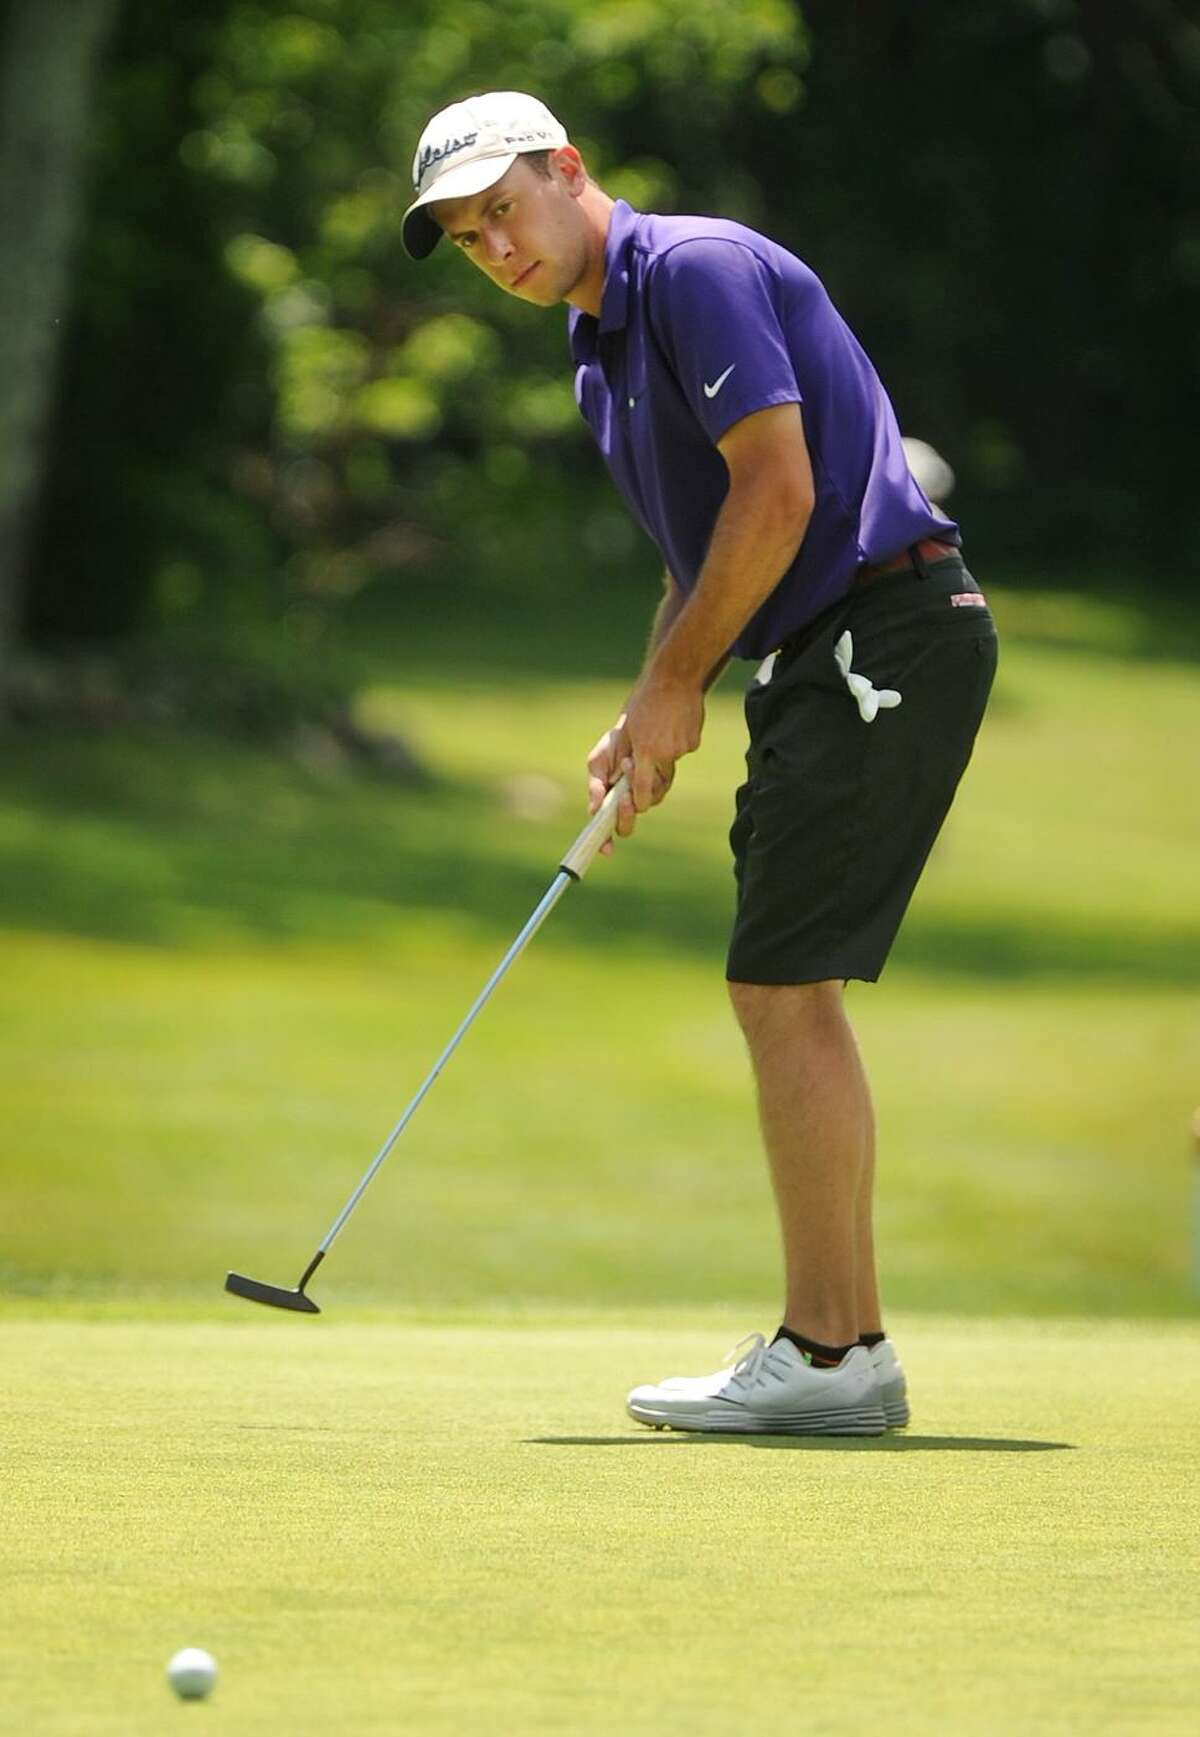 Richard Dowling, of Shelton, putts on the 9th green during semifinals match play at the 115th Connecticut Amateur Golf Tournament at Tashua Knolls Golf Course in Trumbull, Conn. on Wednesday, June 21, 2017.